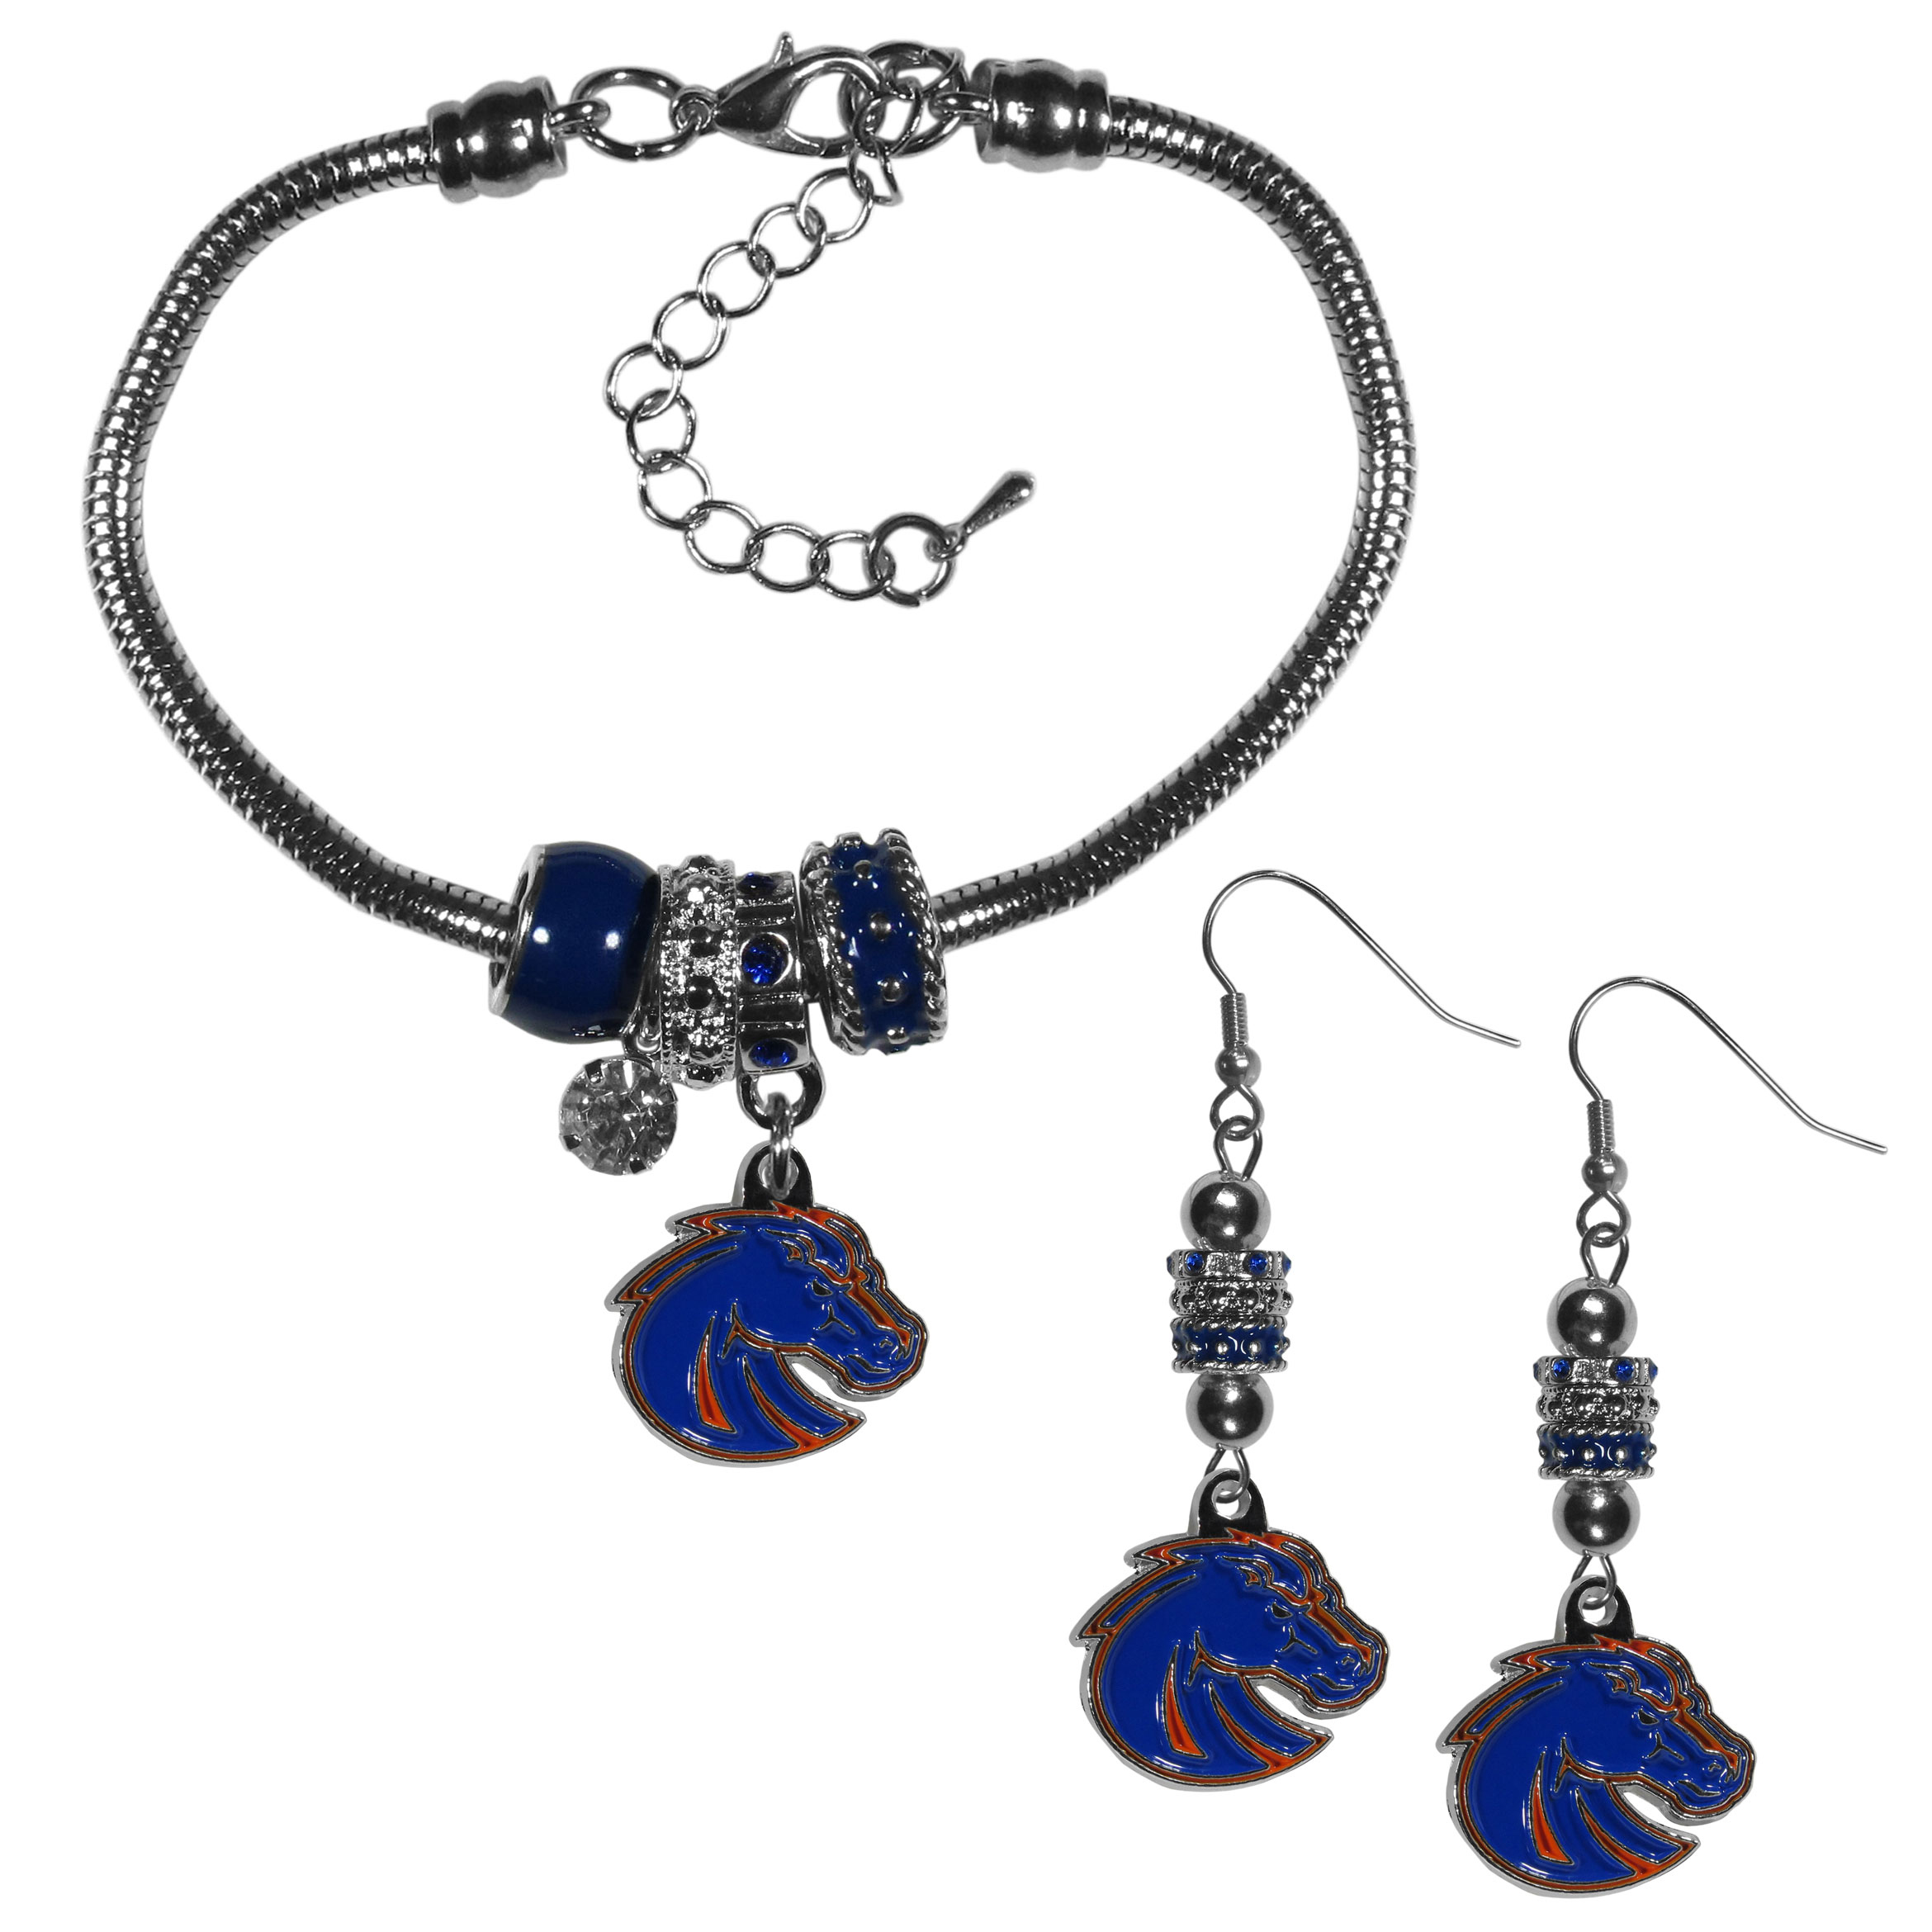 Boise St. Broncos Euro Bead Earrings and Bracelet Set - We combine the popular Euro bead style with your love of the Boise St. Broncos with this beautiful jewelry set that includes earrings and a matching bracelet. The stylish earrings feature hypoallergenic, nickel free fishhook posts and 3 team colored Euro beads and a metal team charm. The matching snake chain bracelet is 7.5 inches long with a 2 inch extender and 4 Euro beads with a rhinestone charm and team charm.